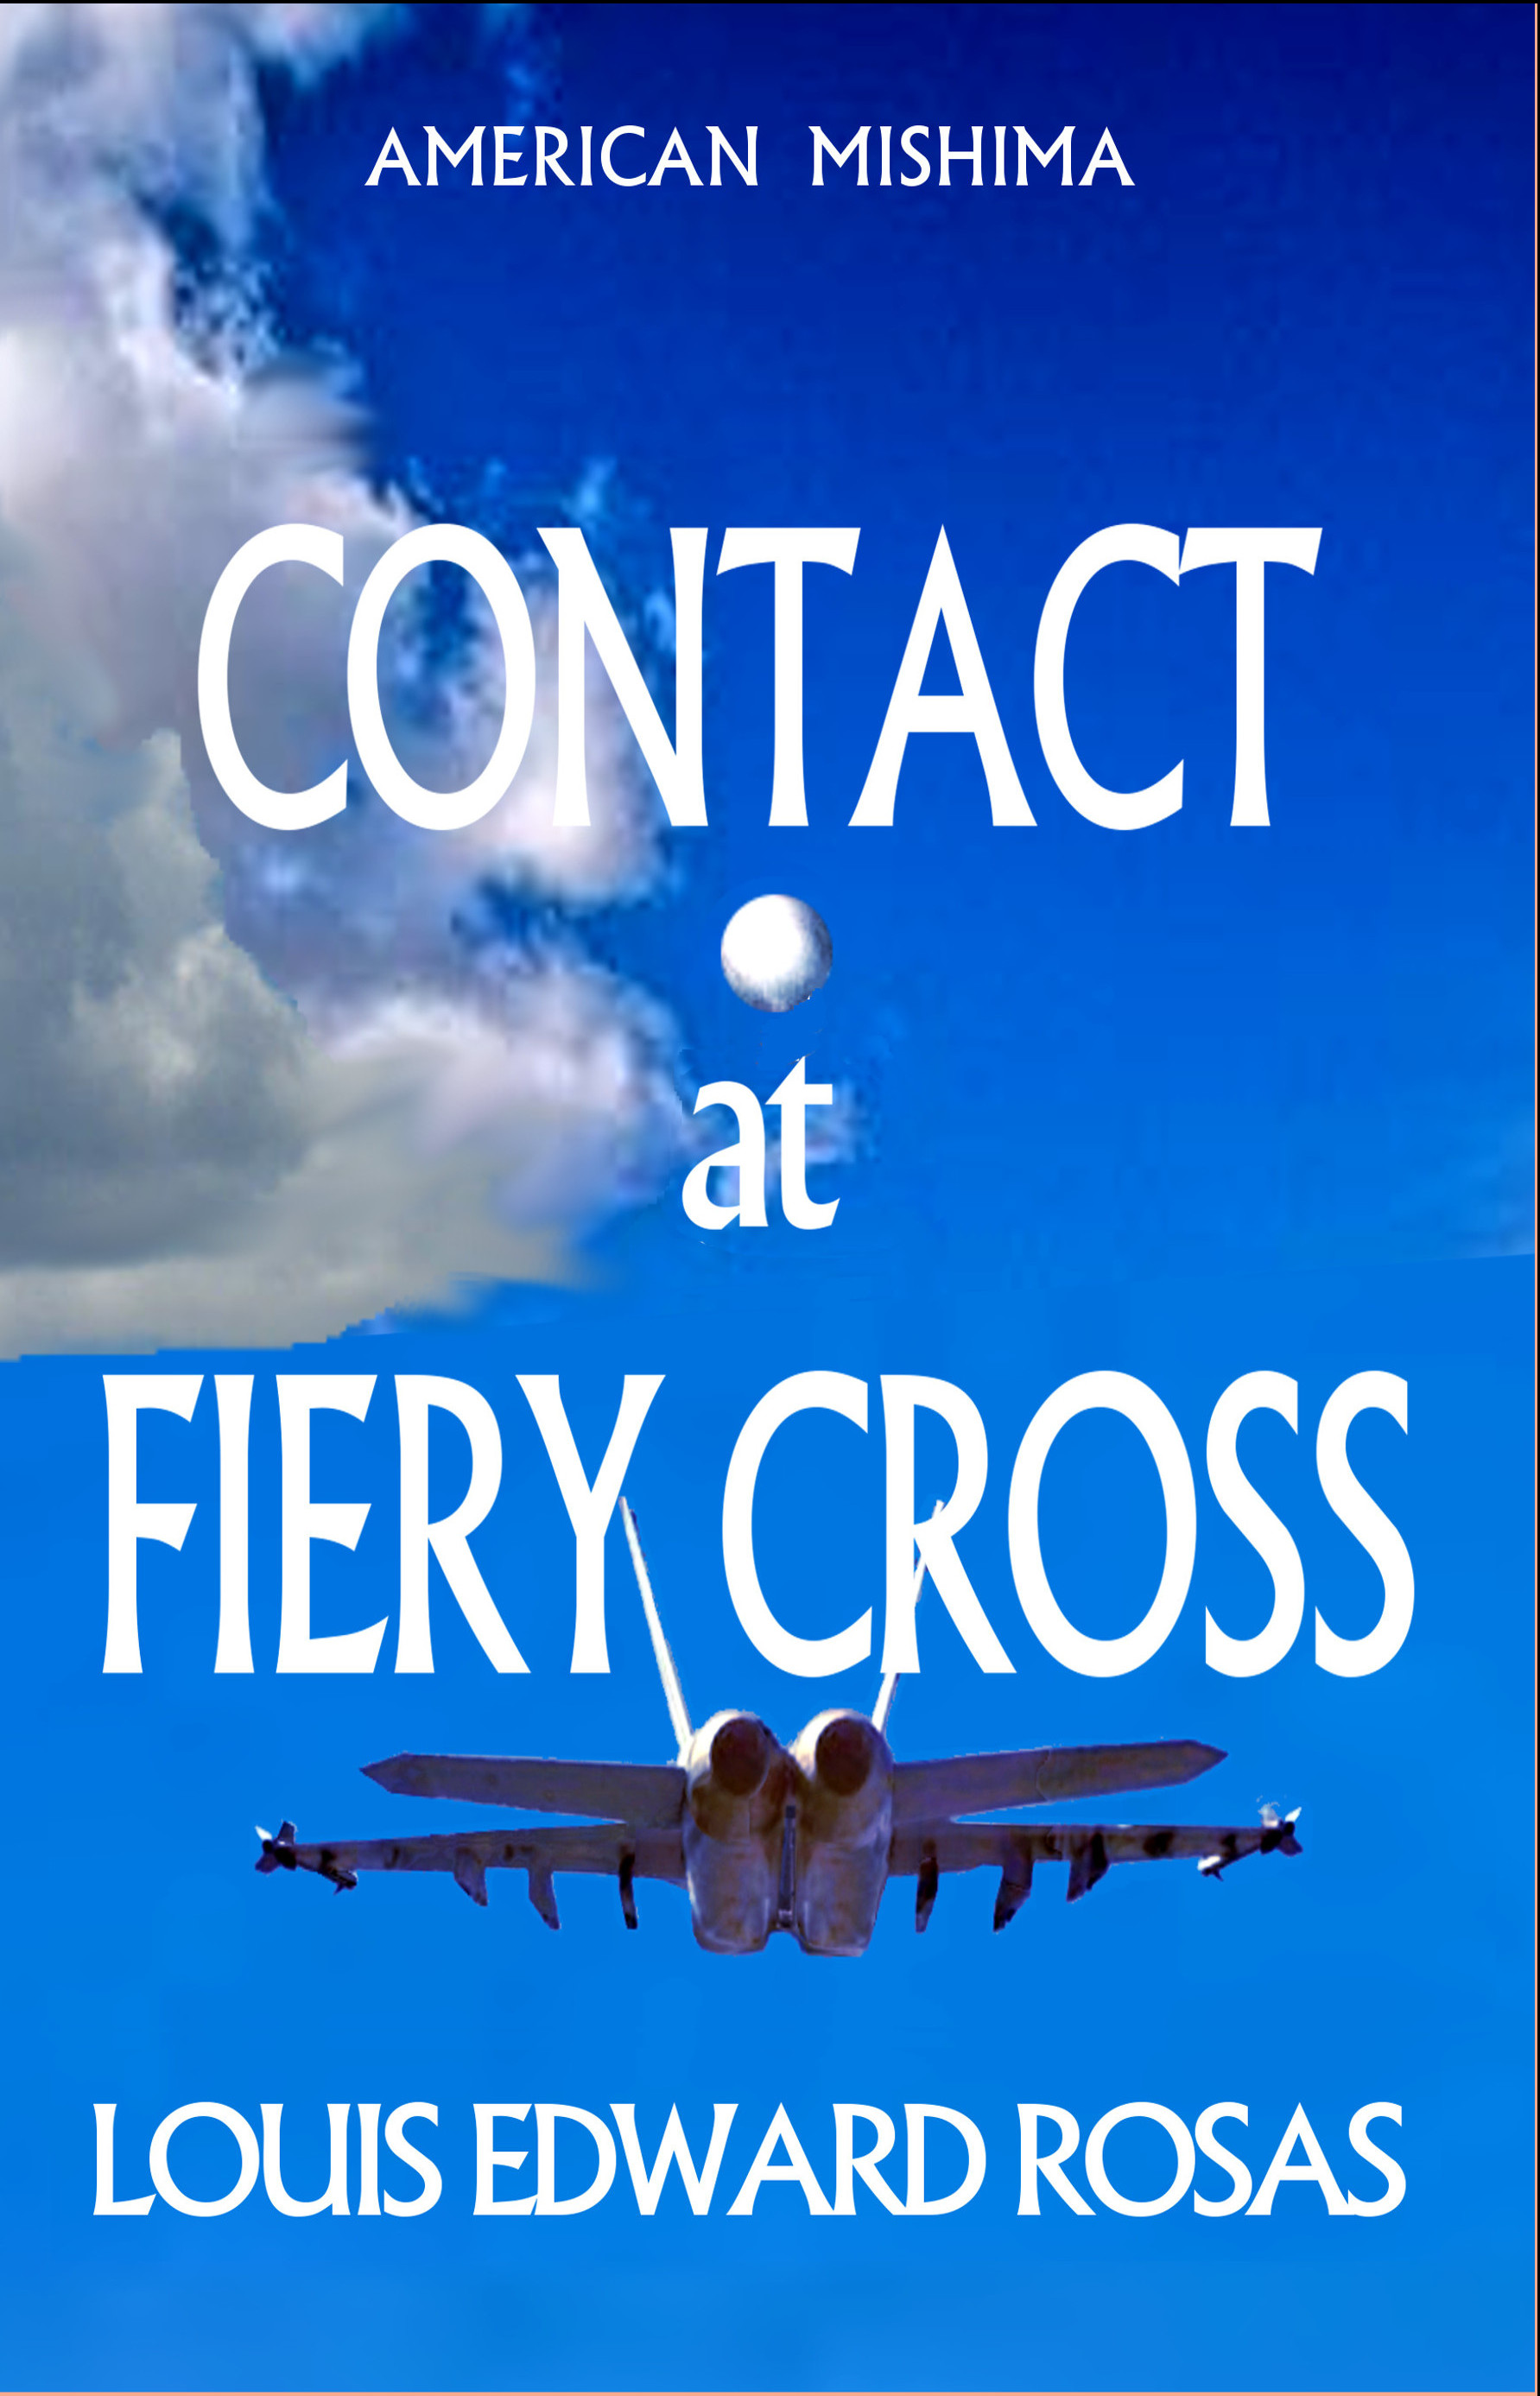 Contact at fiery cross